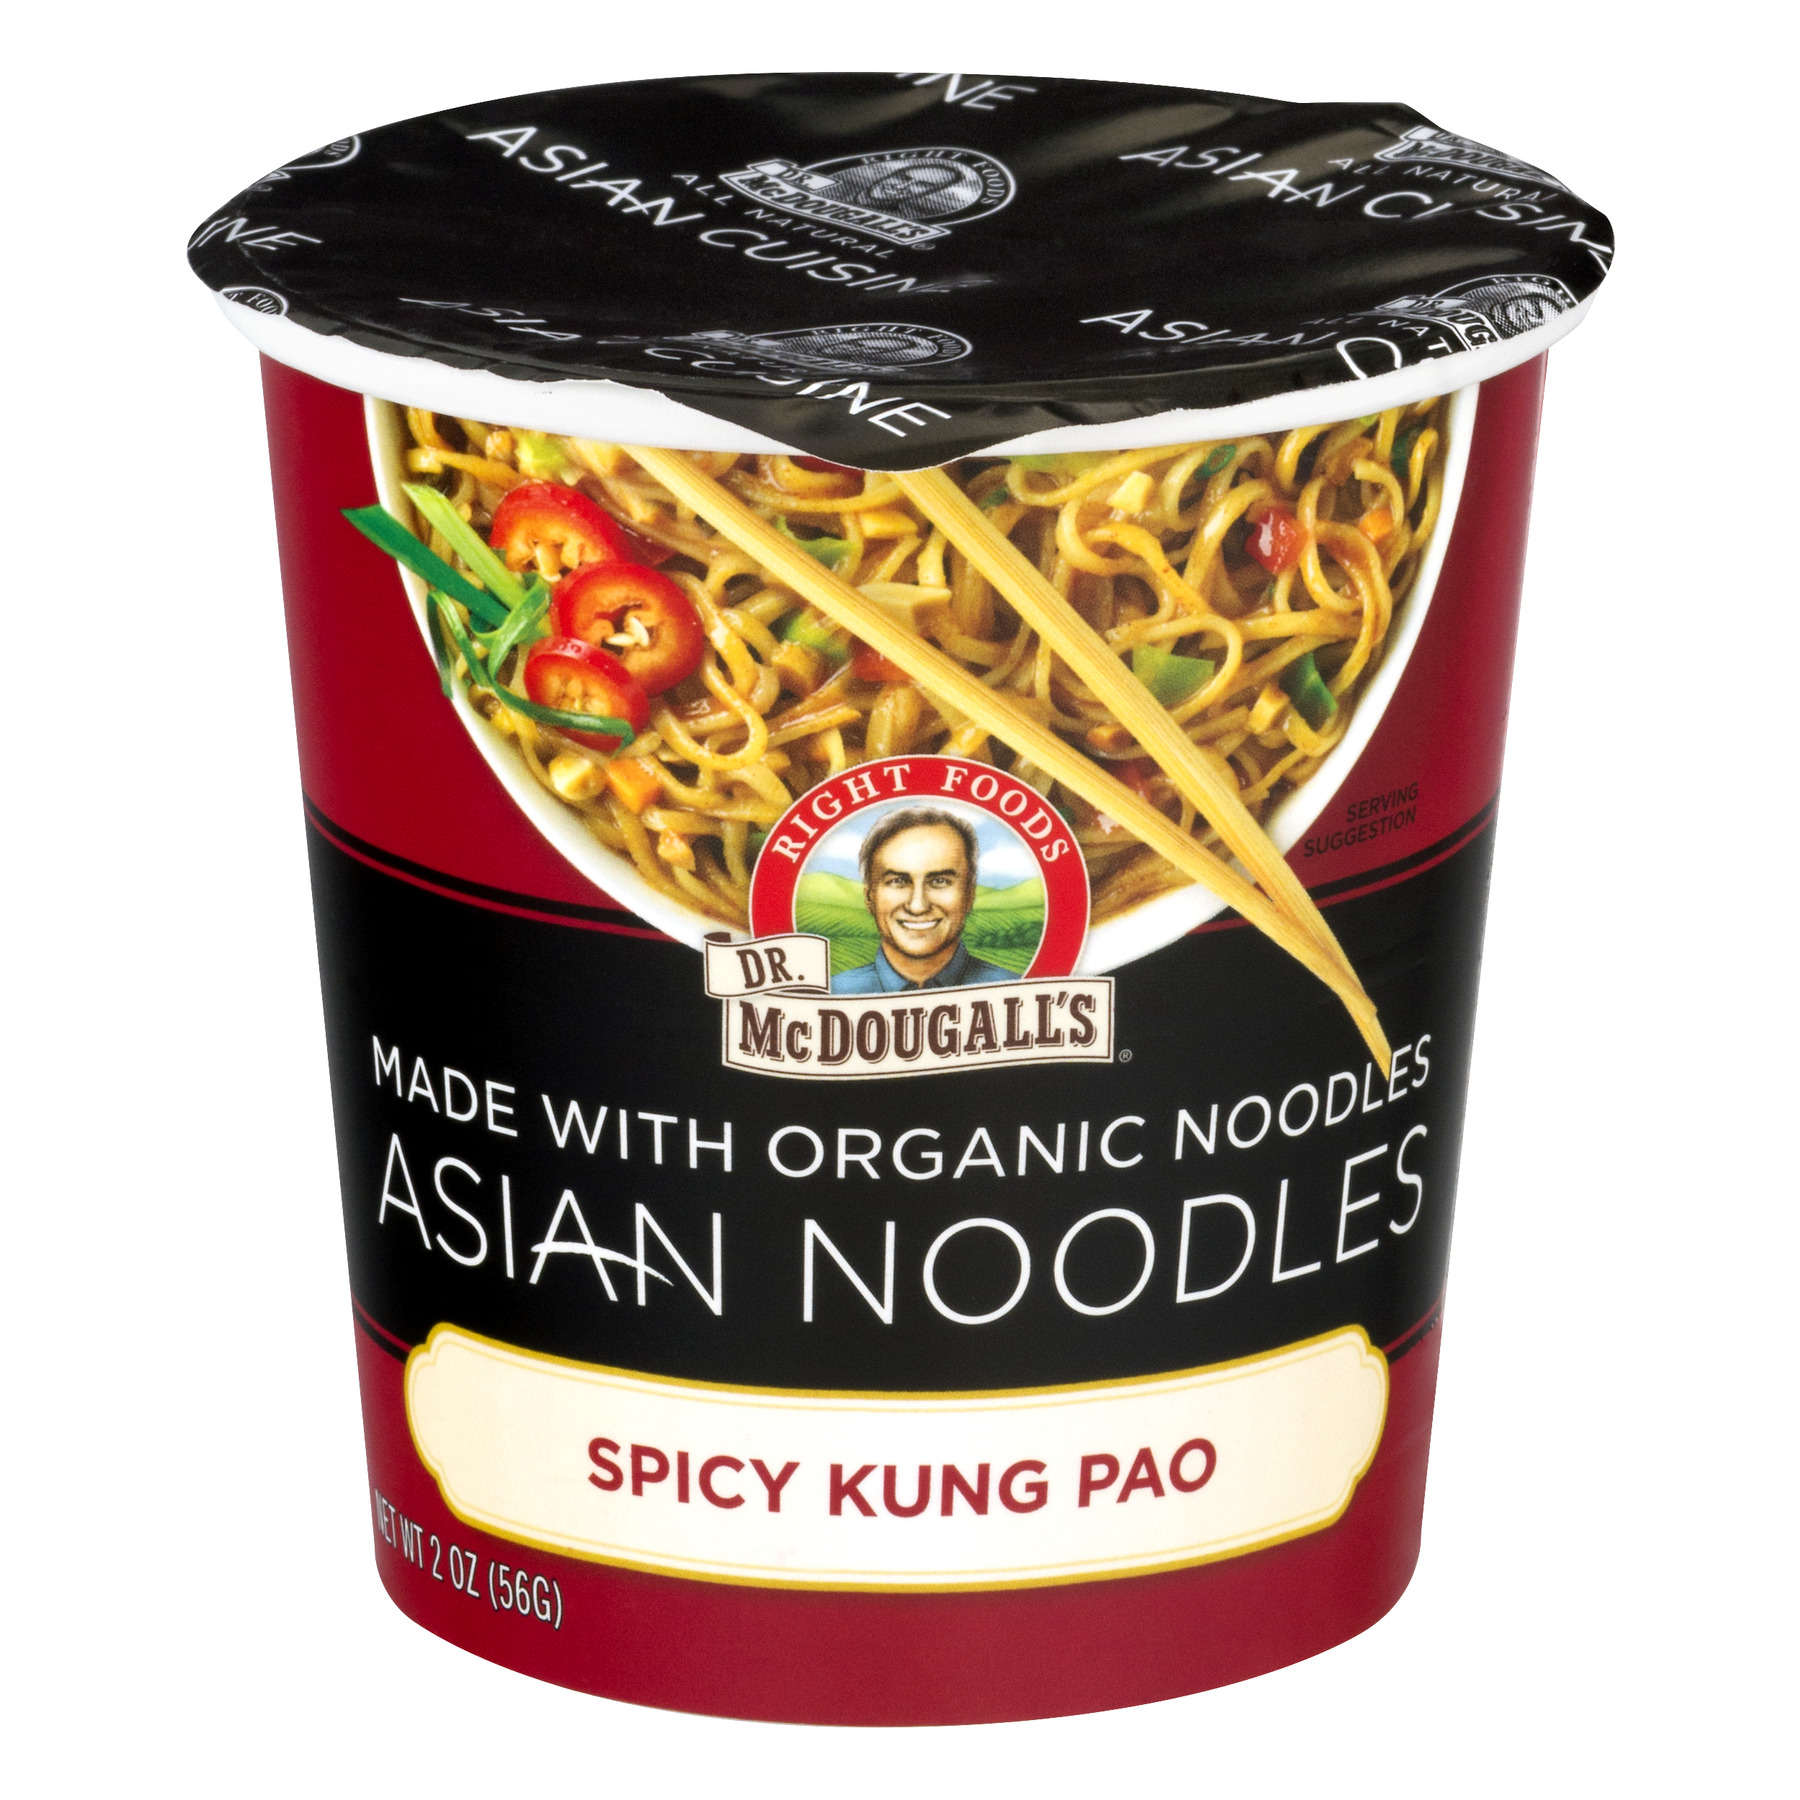 Dr. McDougall's Organic Asian Noodles Spicy Kung Pao, 2.0 OZ